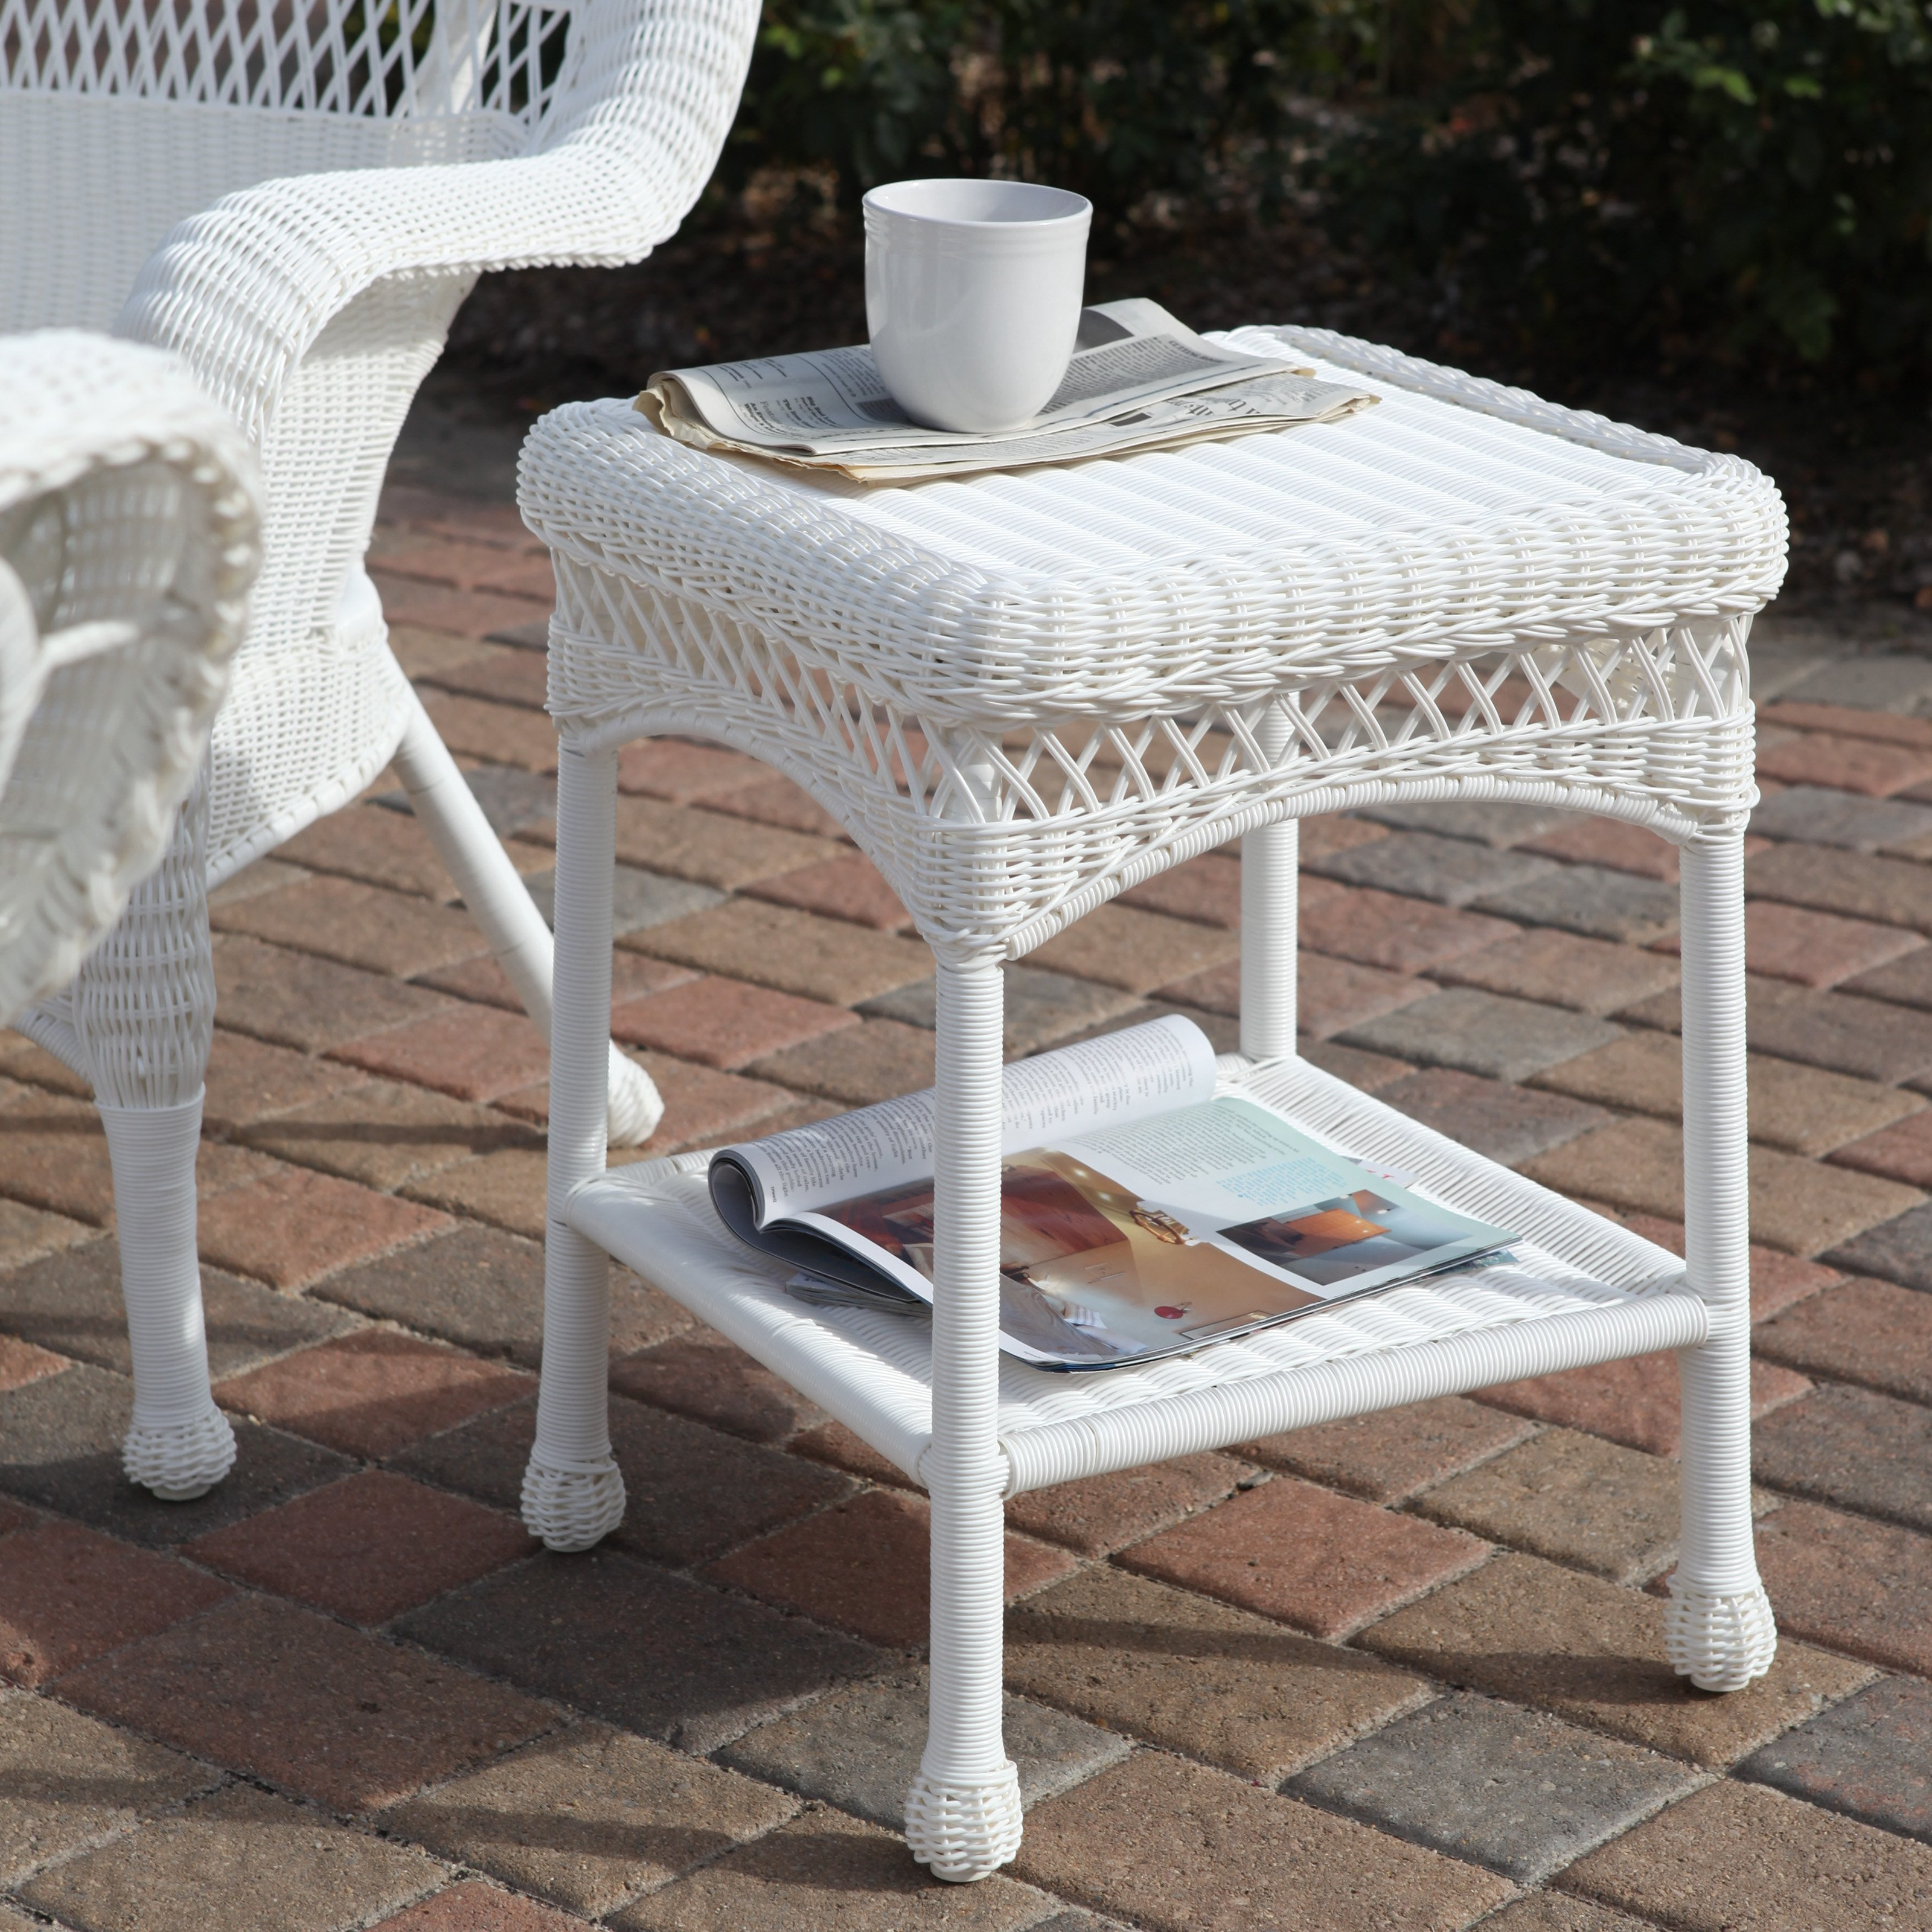 sahara all weather outdoor wicker end table master garden patio accent target white round farm style sofa mosaic bistro astoria furniture west elm industrial desk dining set wine